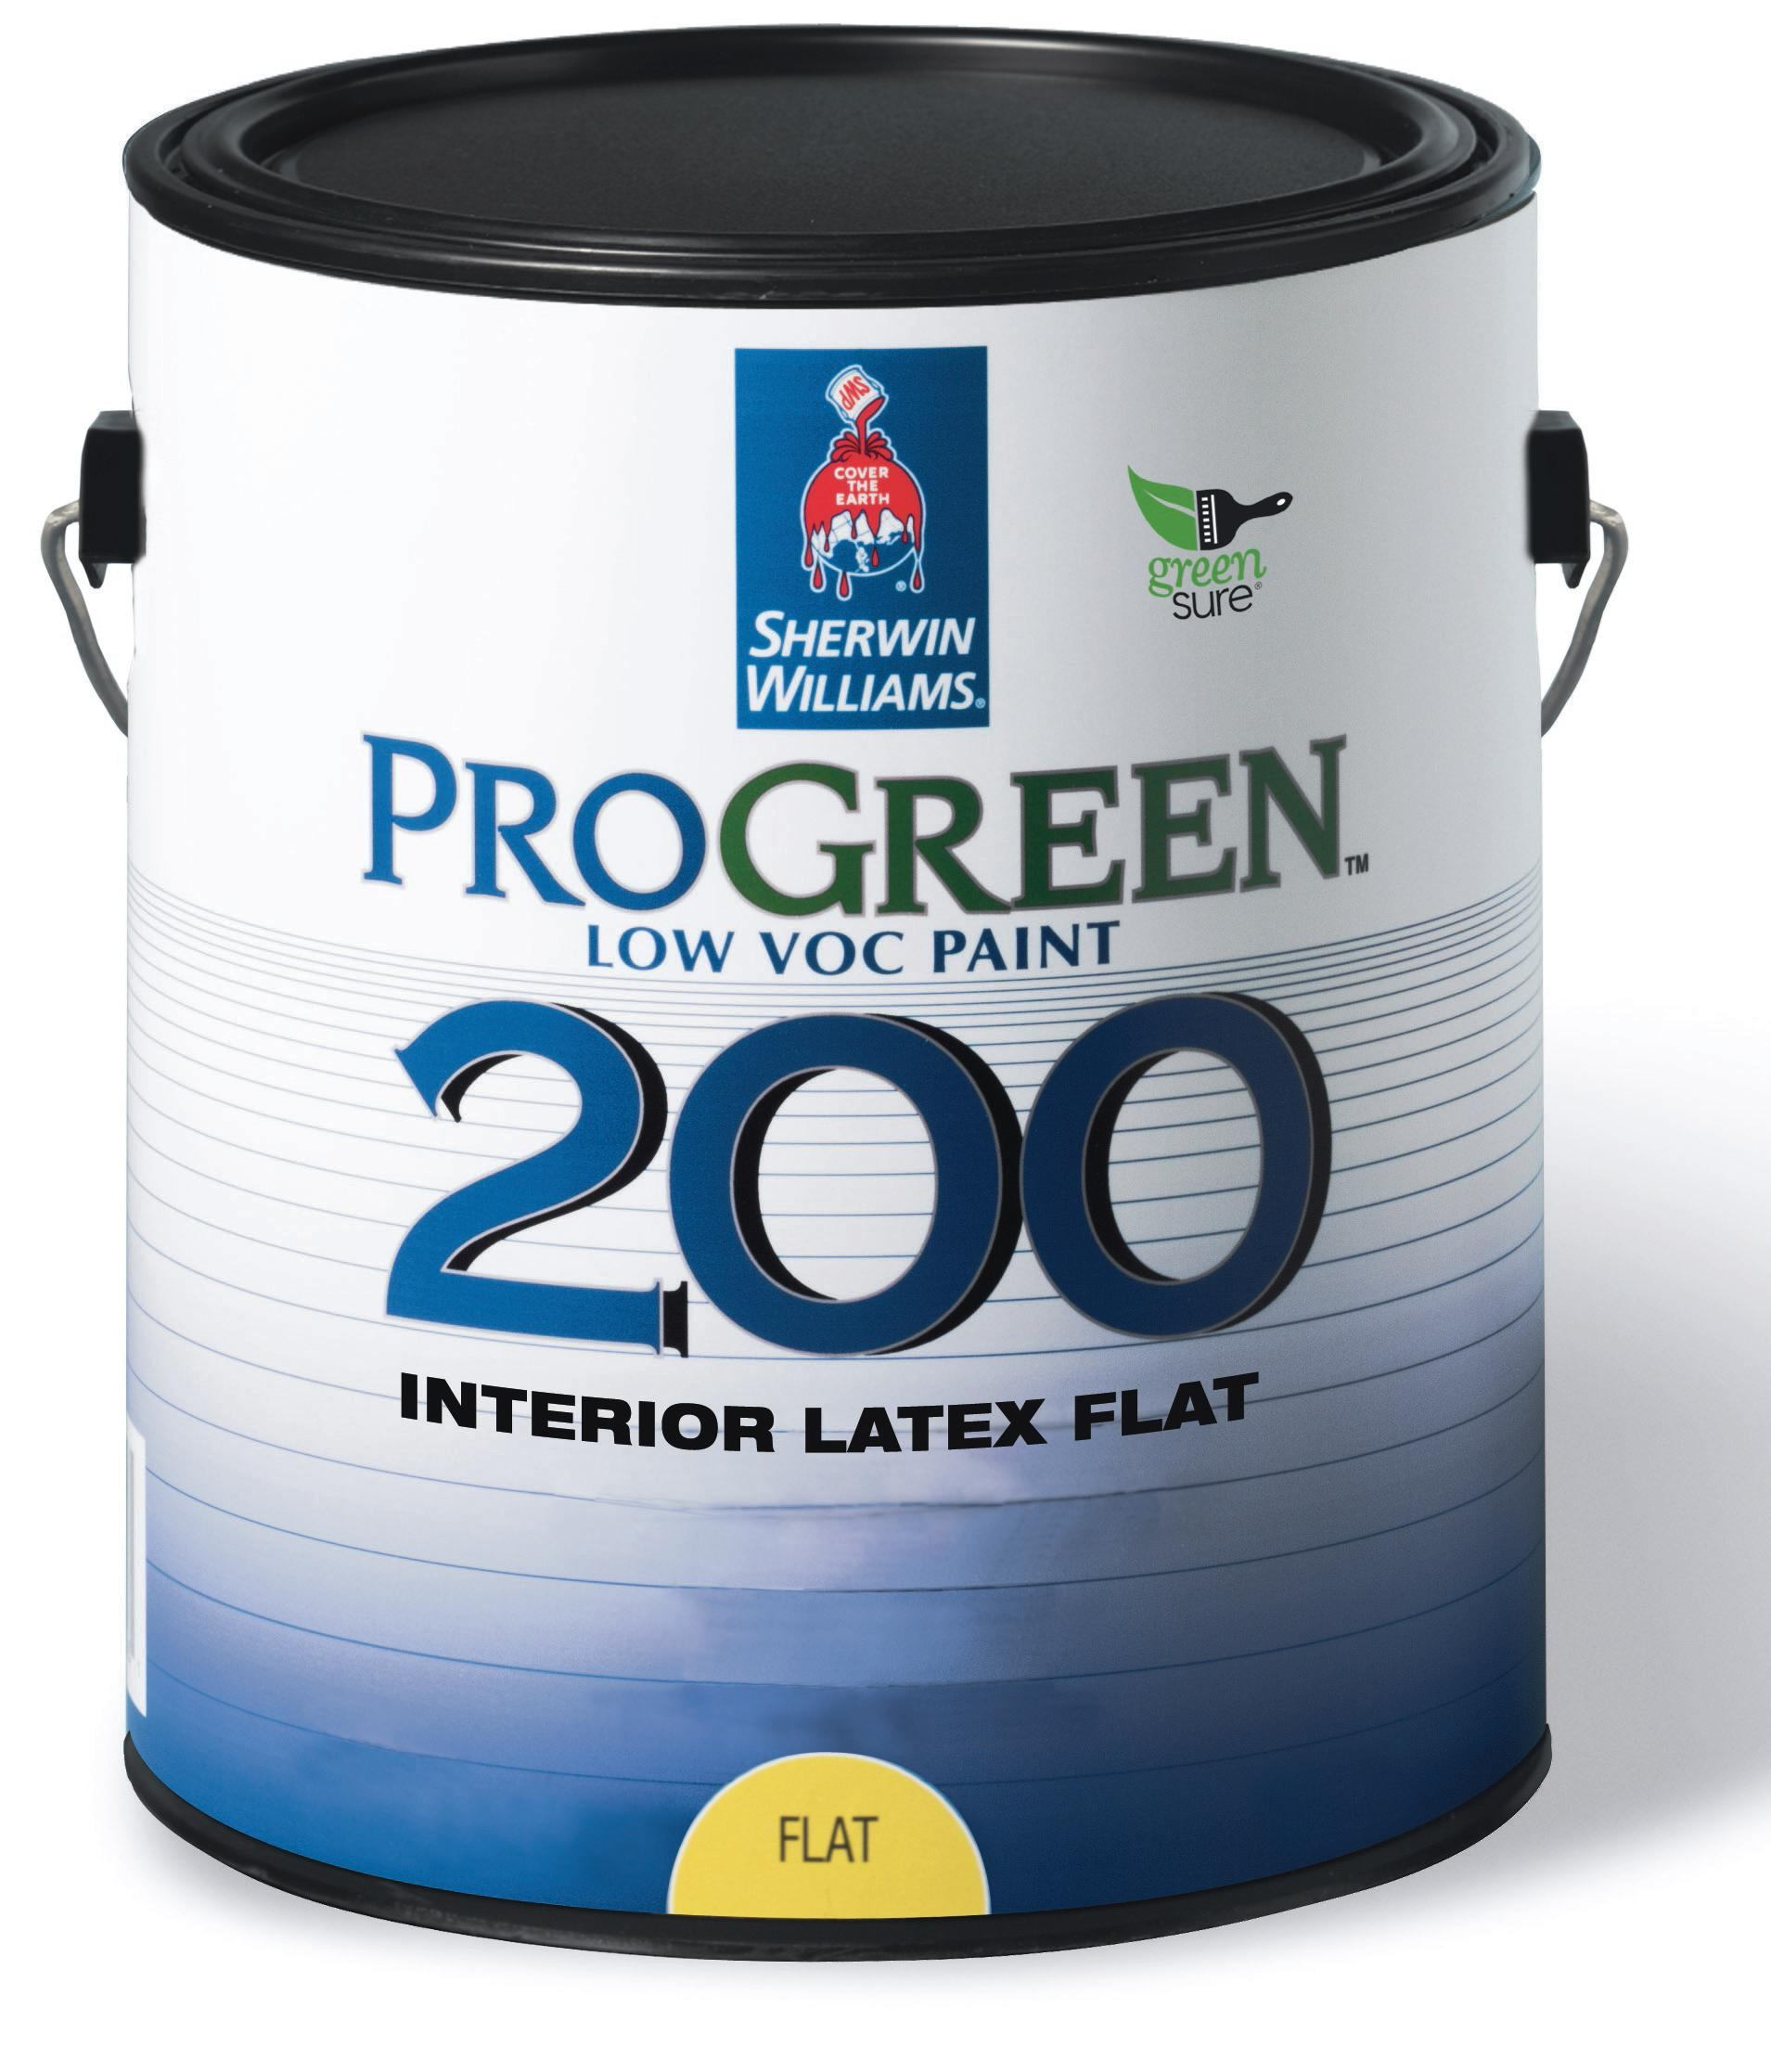 Low Voc Interior Paint: ProGreen 200 From Sherwin-Williams